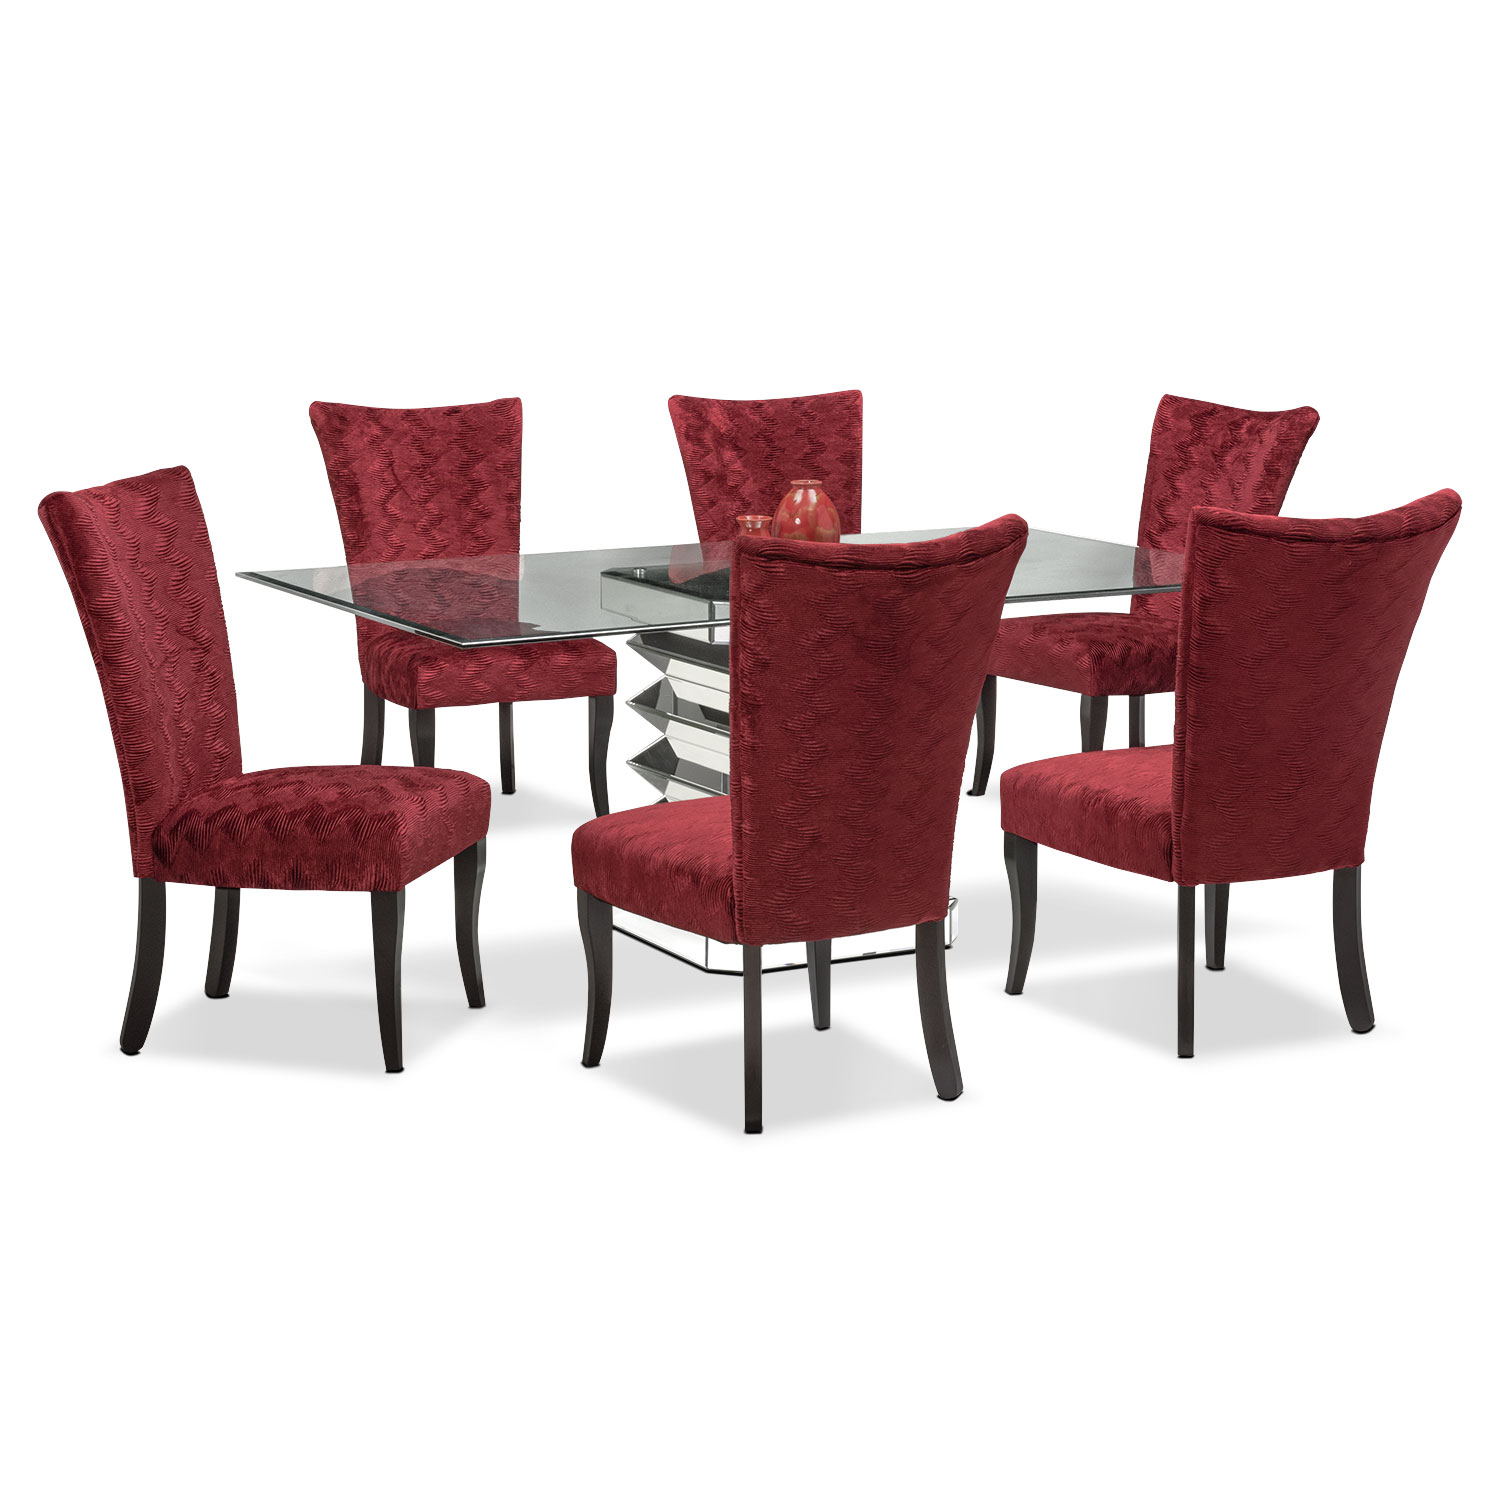 Dining Room Furniture - Vibrato Table and 6 Chairs - Red